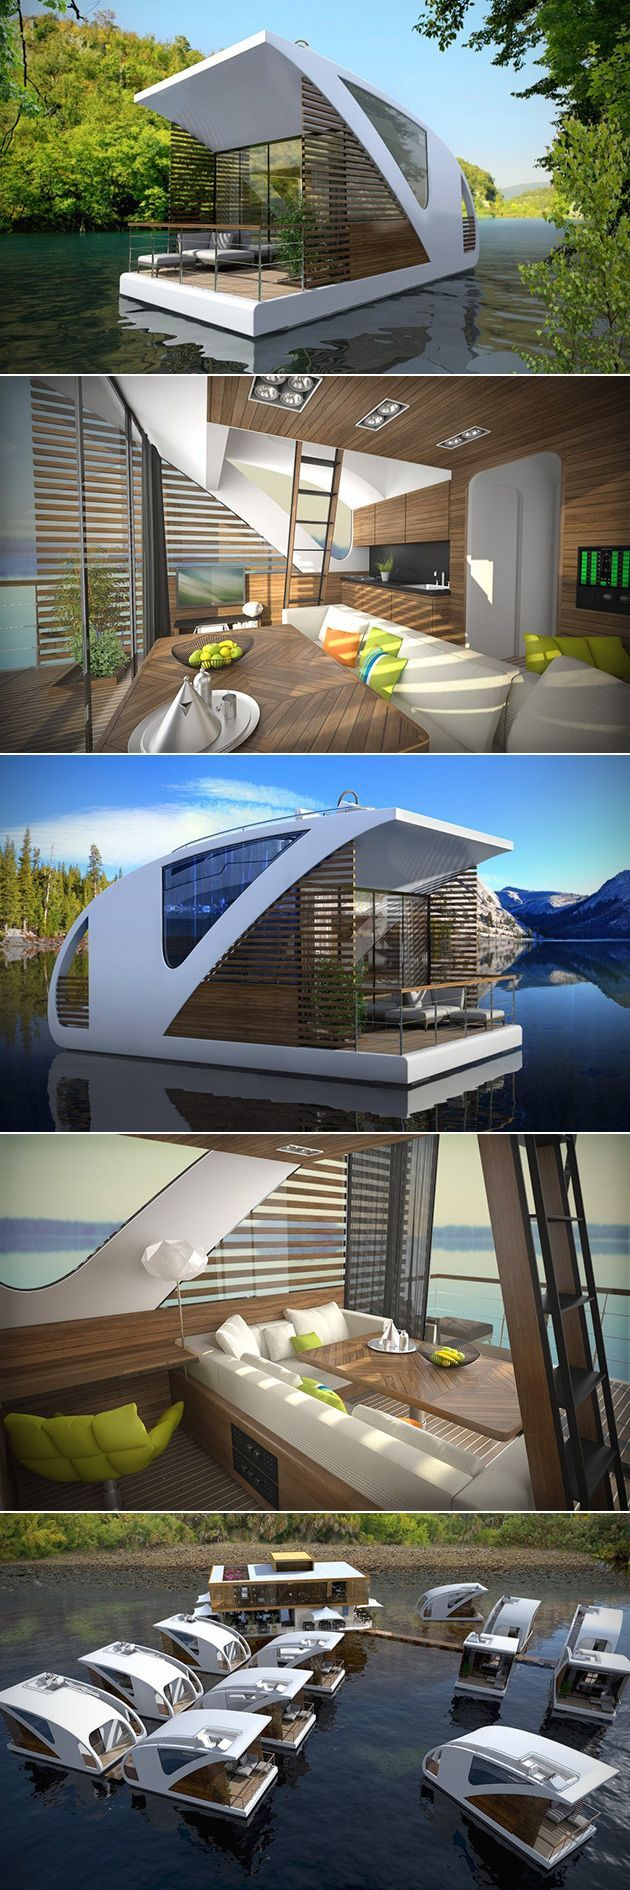 Forget Luxury High-Rises, This Floating Hotel Lets You Stay in Catamaran Apartments